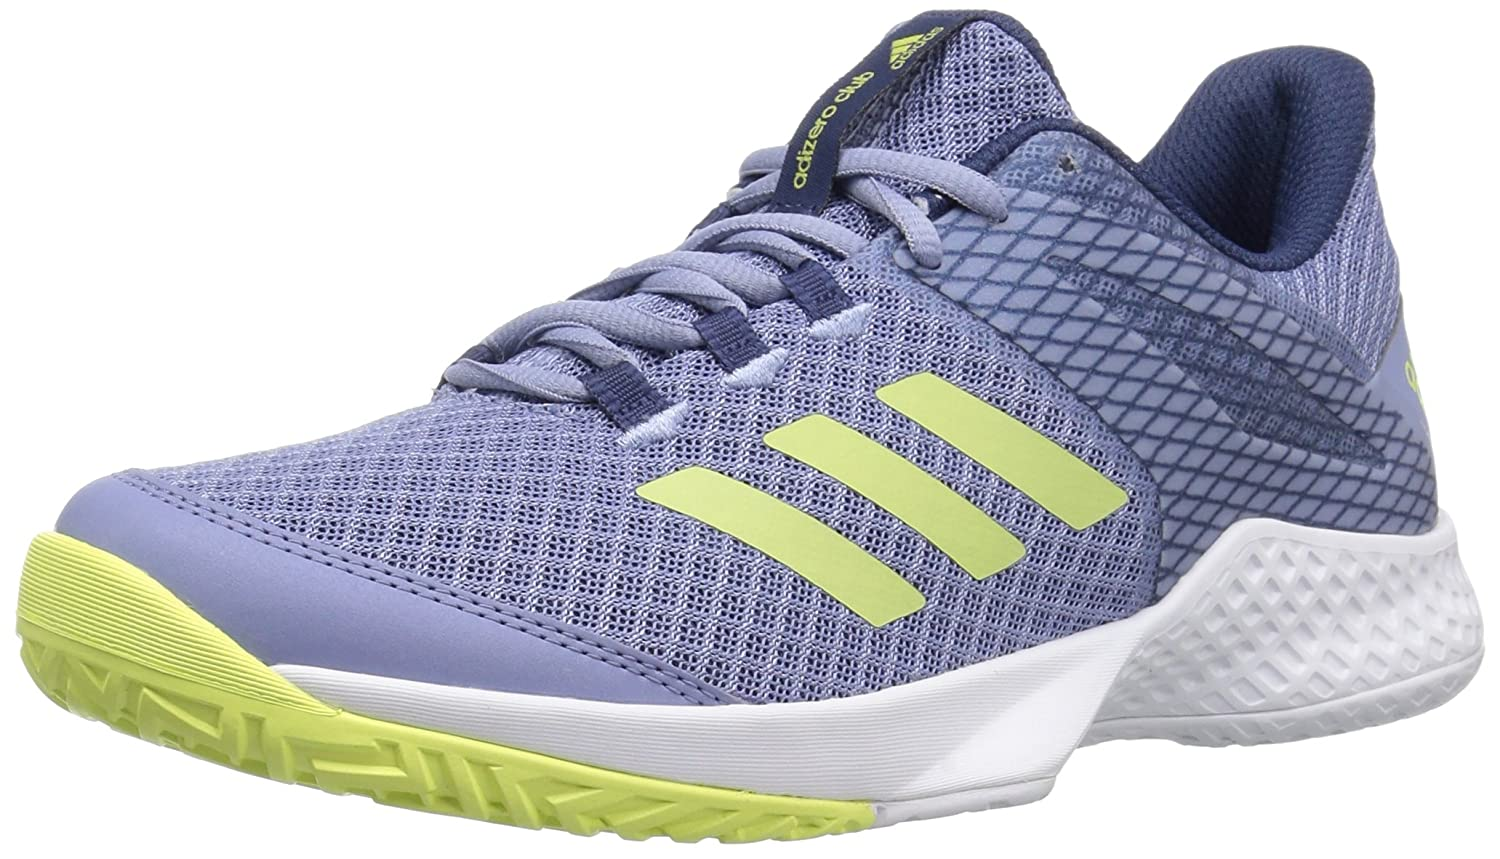 adidas Women's Adizero Club w Tennis Shoe B0719JYPJ9 5 B(M) US|Chalk Blue/Semi Frozen Yellow/Noble Indigo